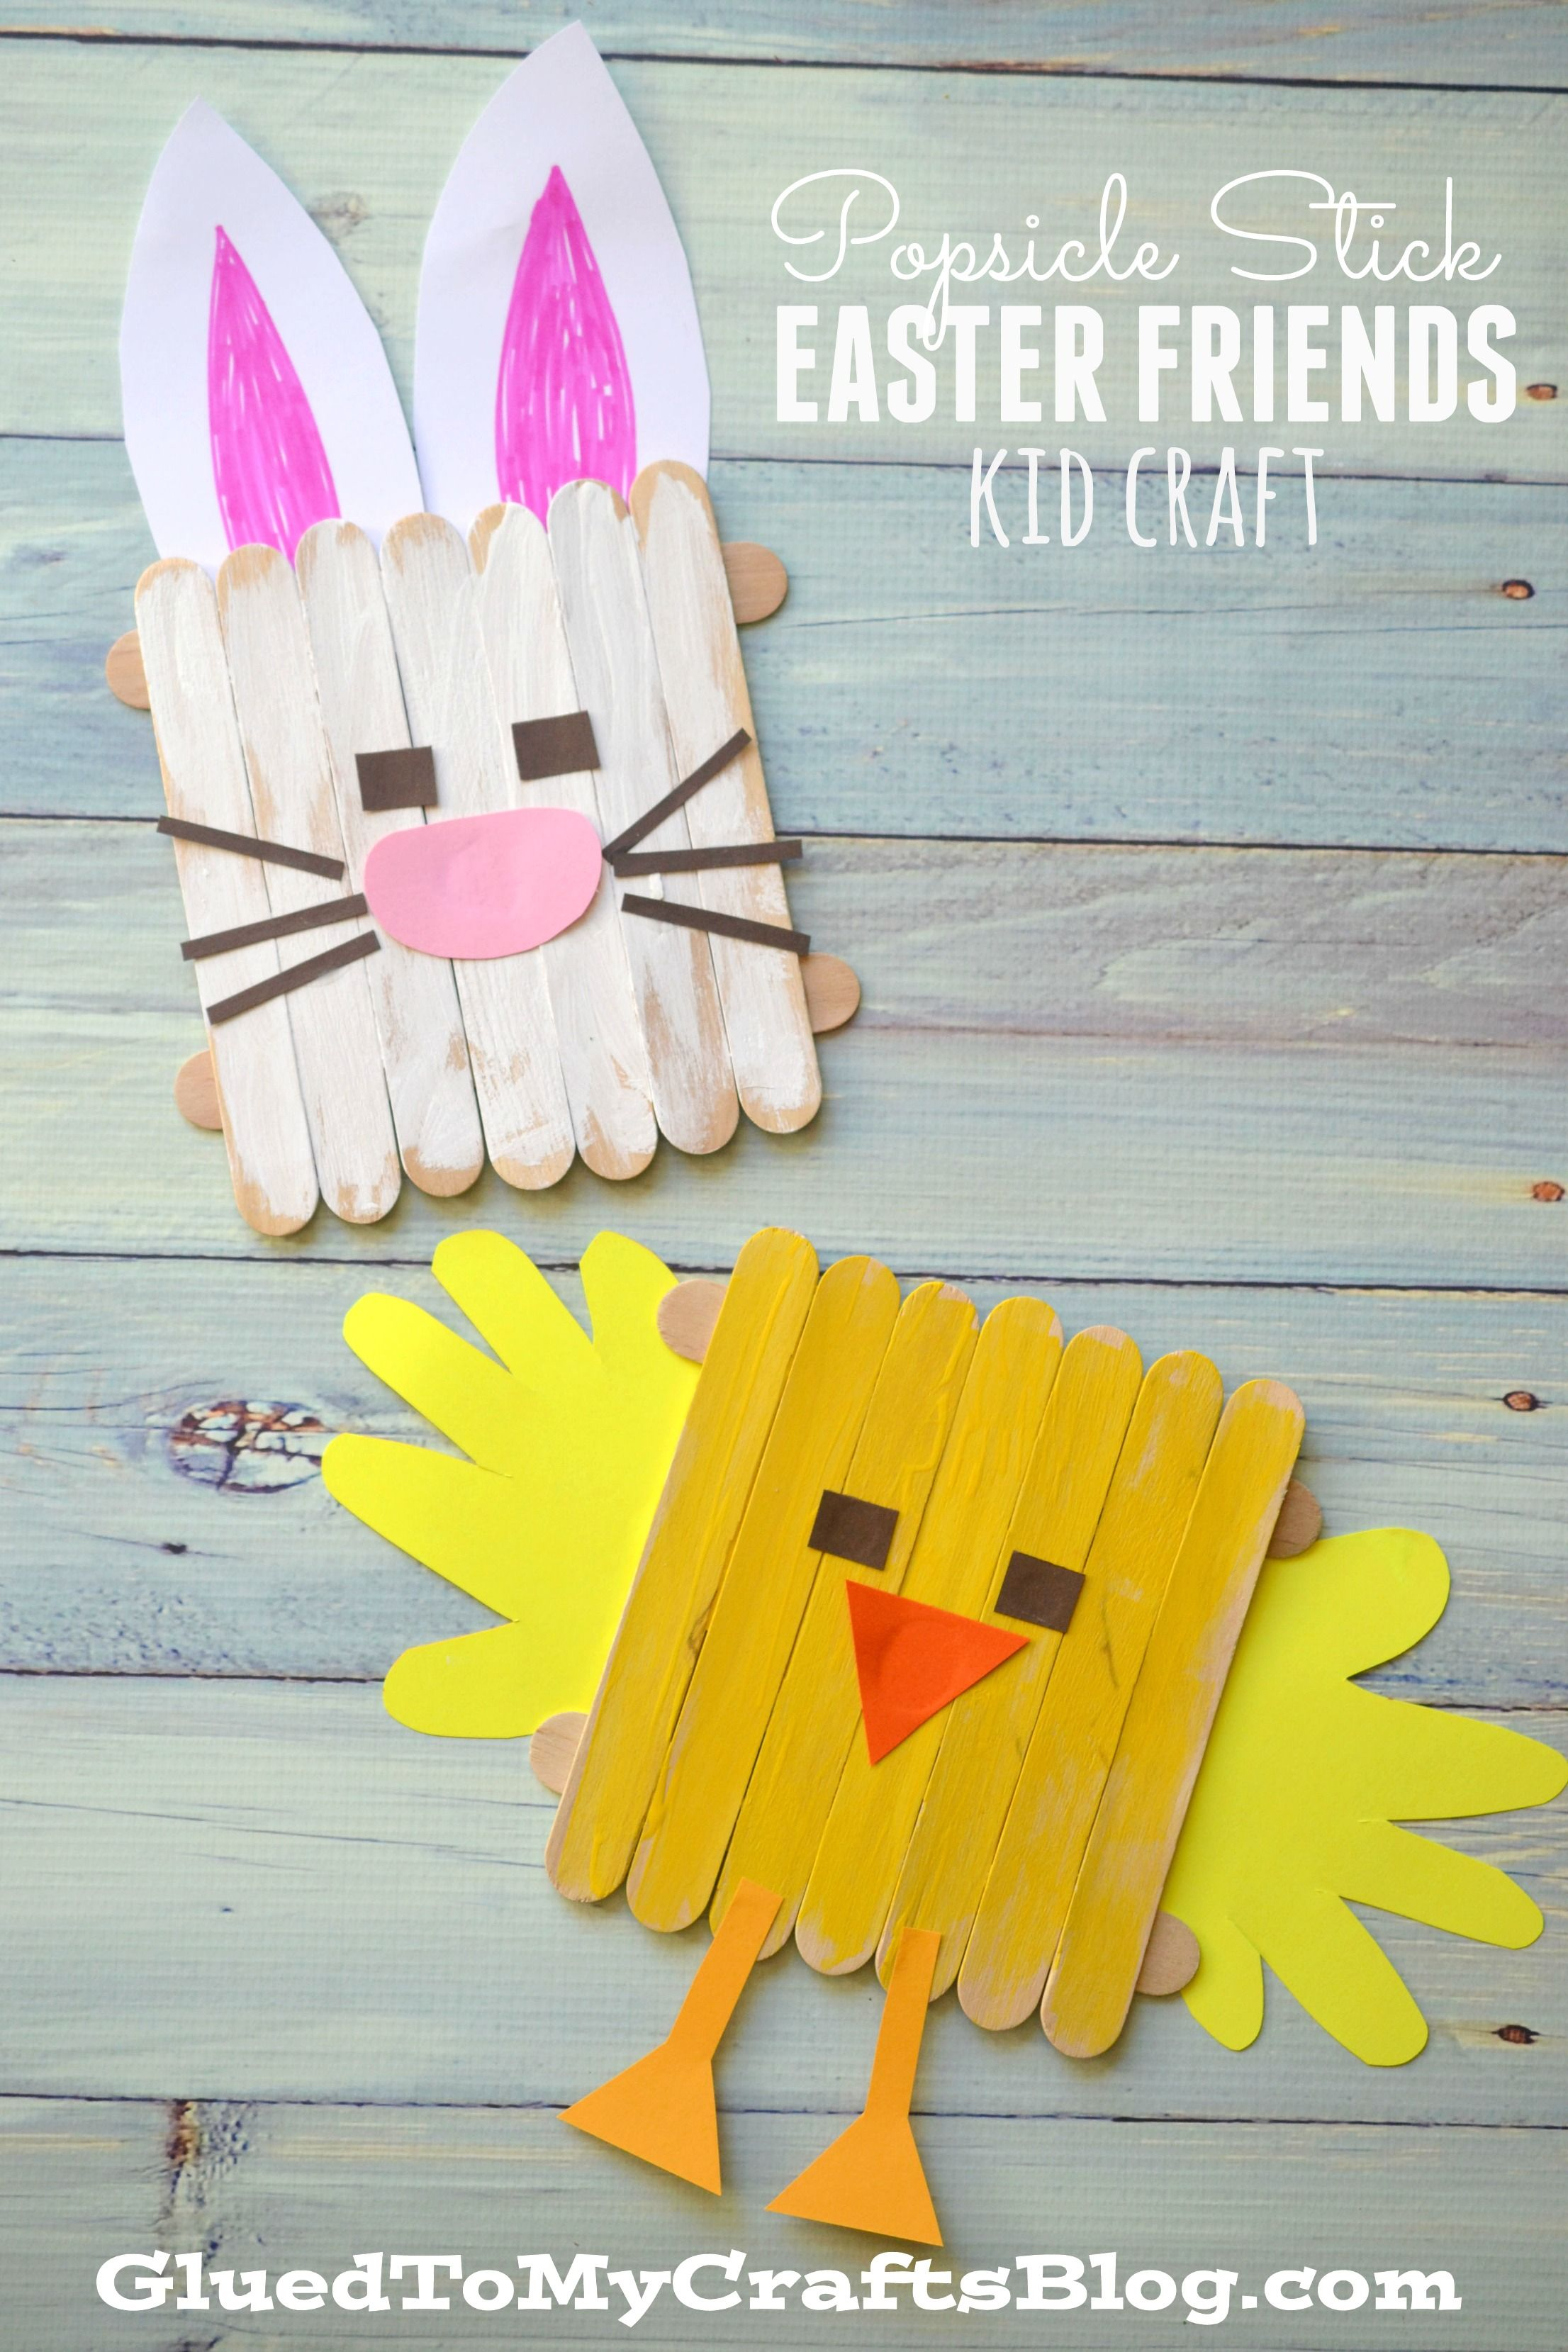 Popsicle Stick Easter Friends Kid Craft Easter Arts Crafts